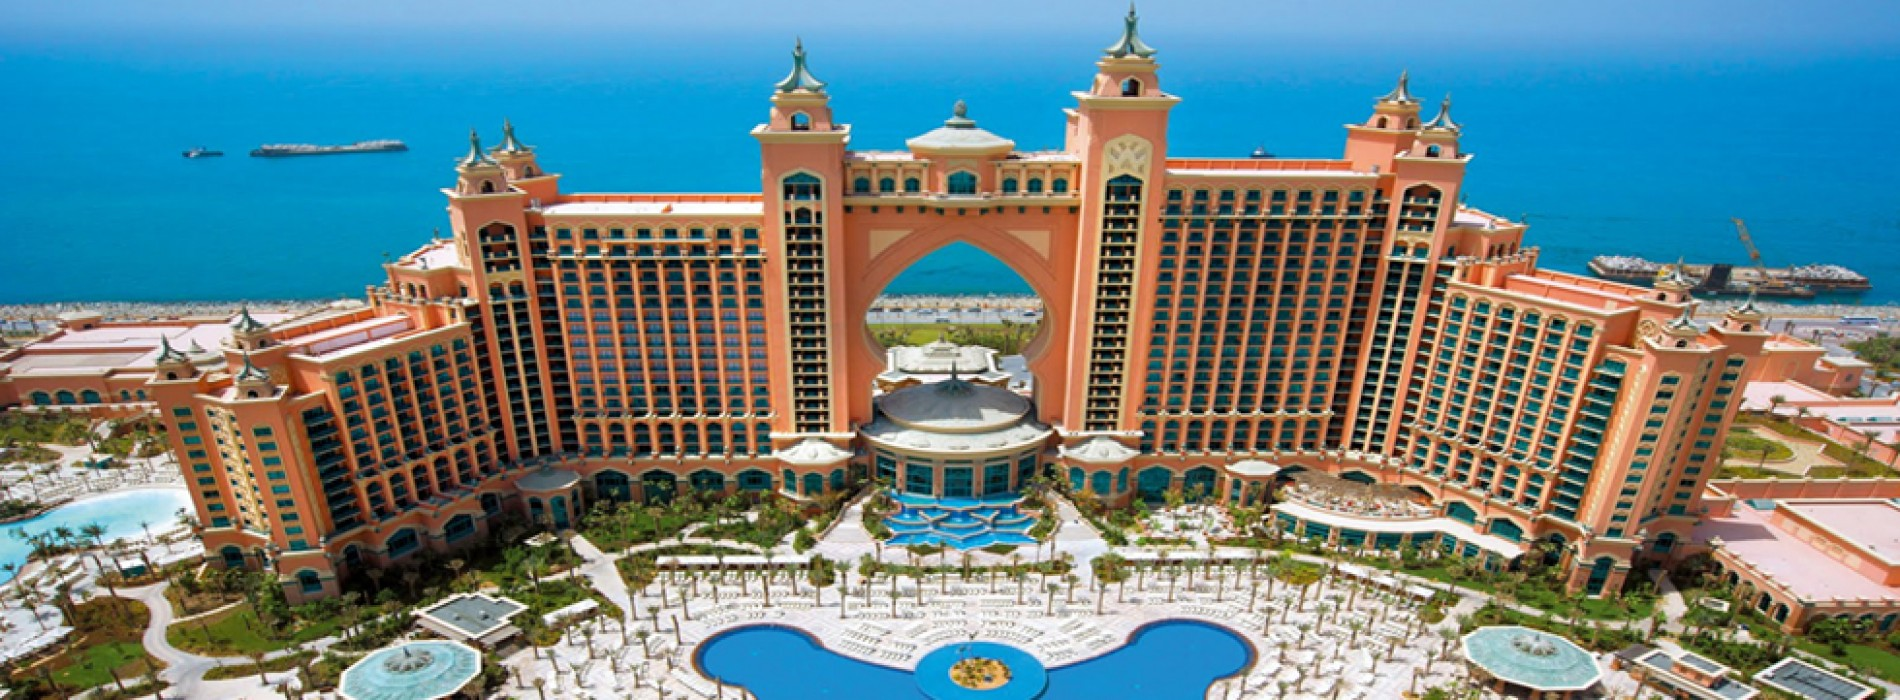 Atlantis, The Palm takes the title as the Most Instagrammed Hotel in Dubai and the Middle East